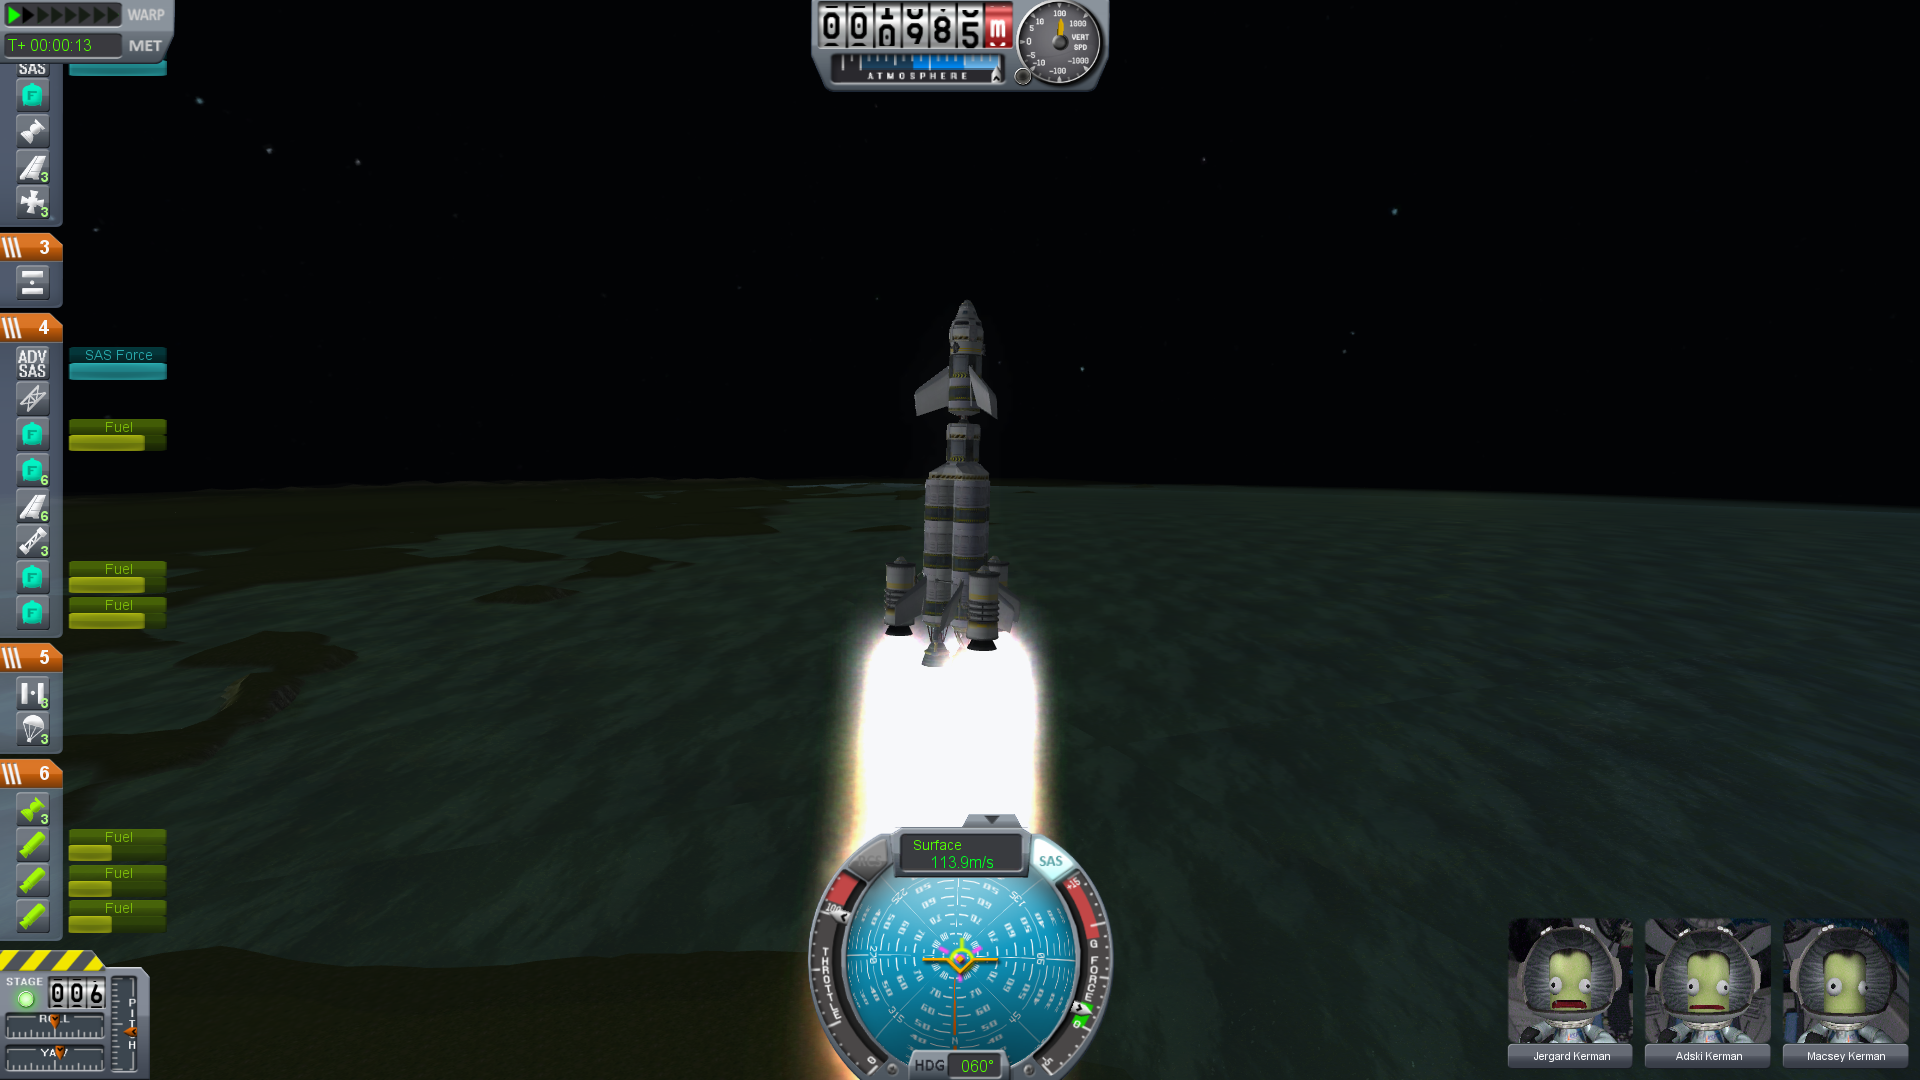 Orbit, it's like falling, but you miss the ground: Kerbal